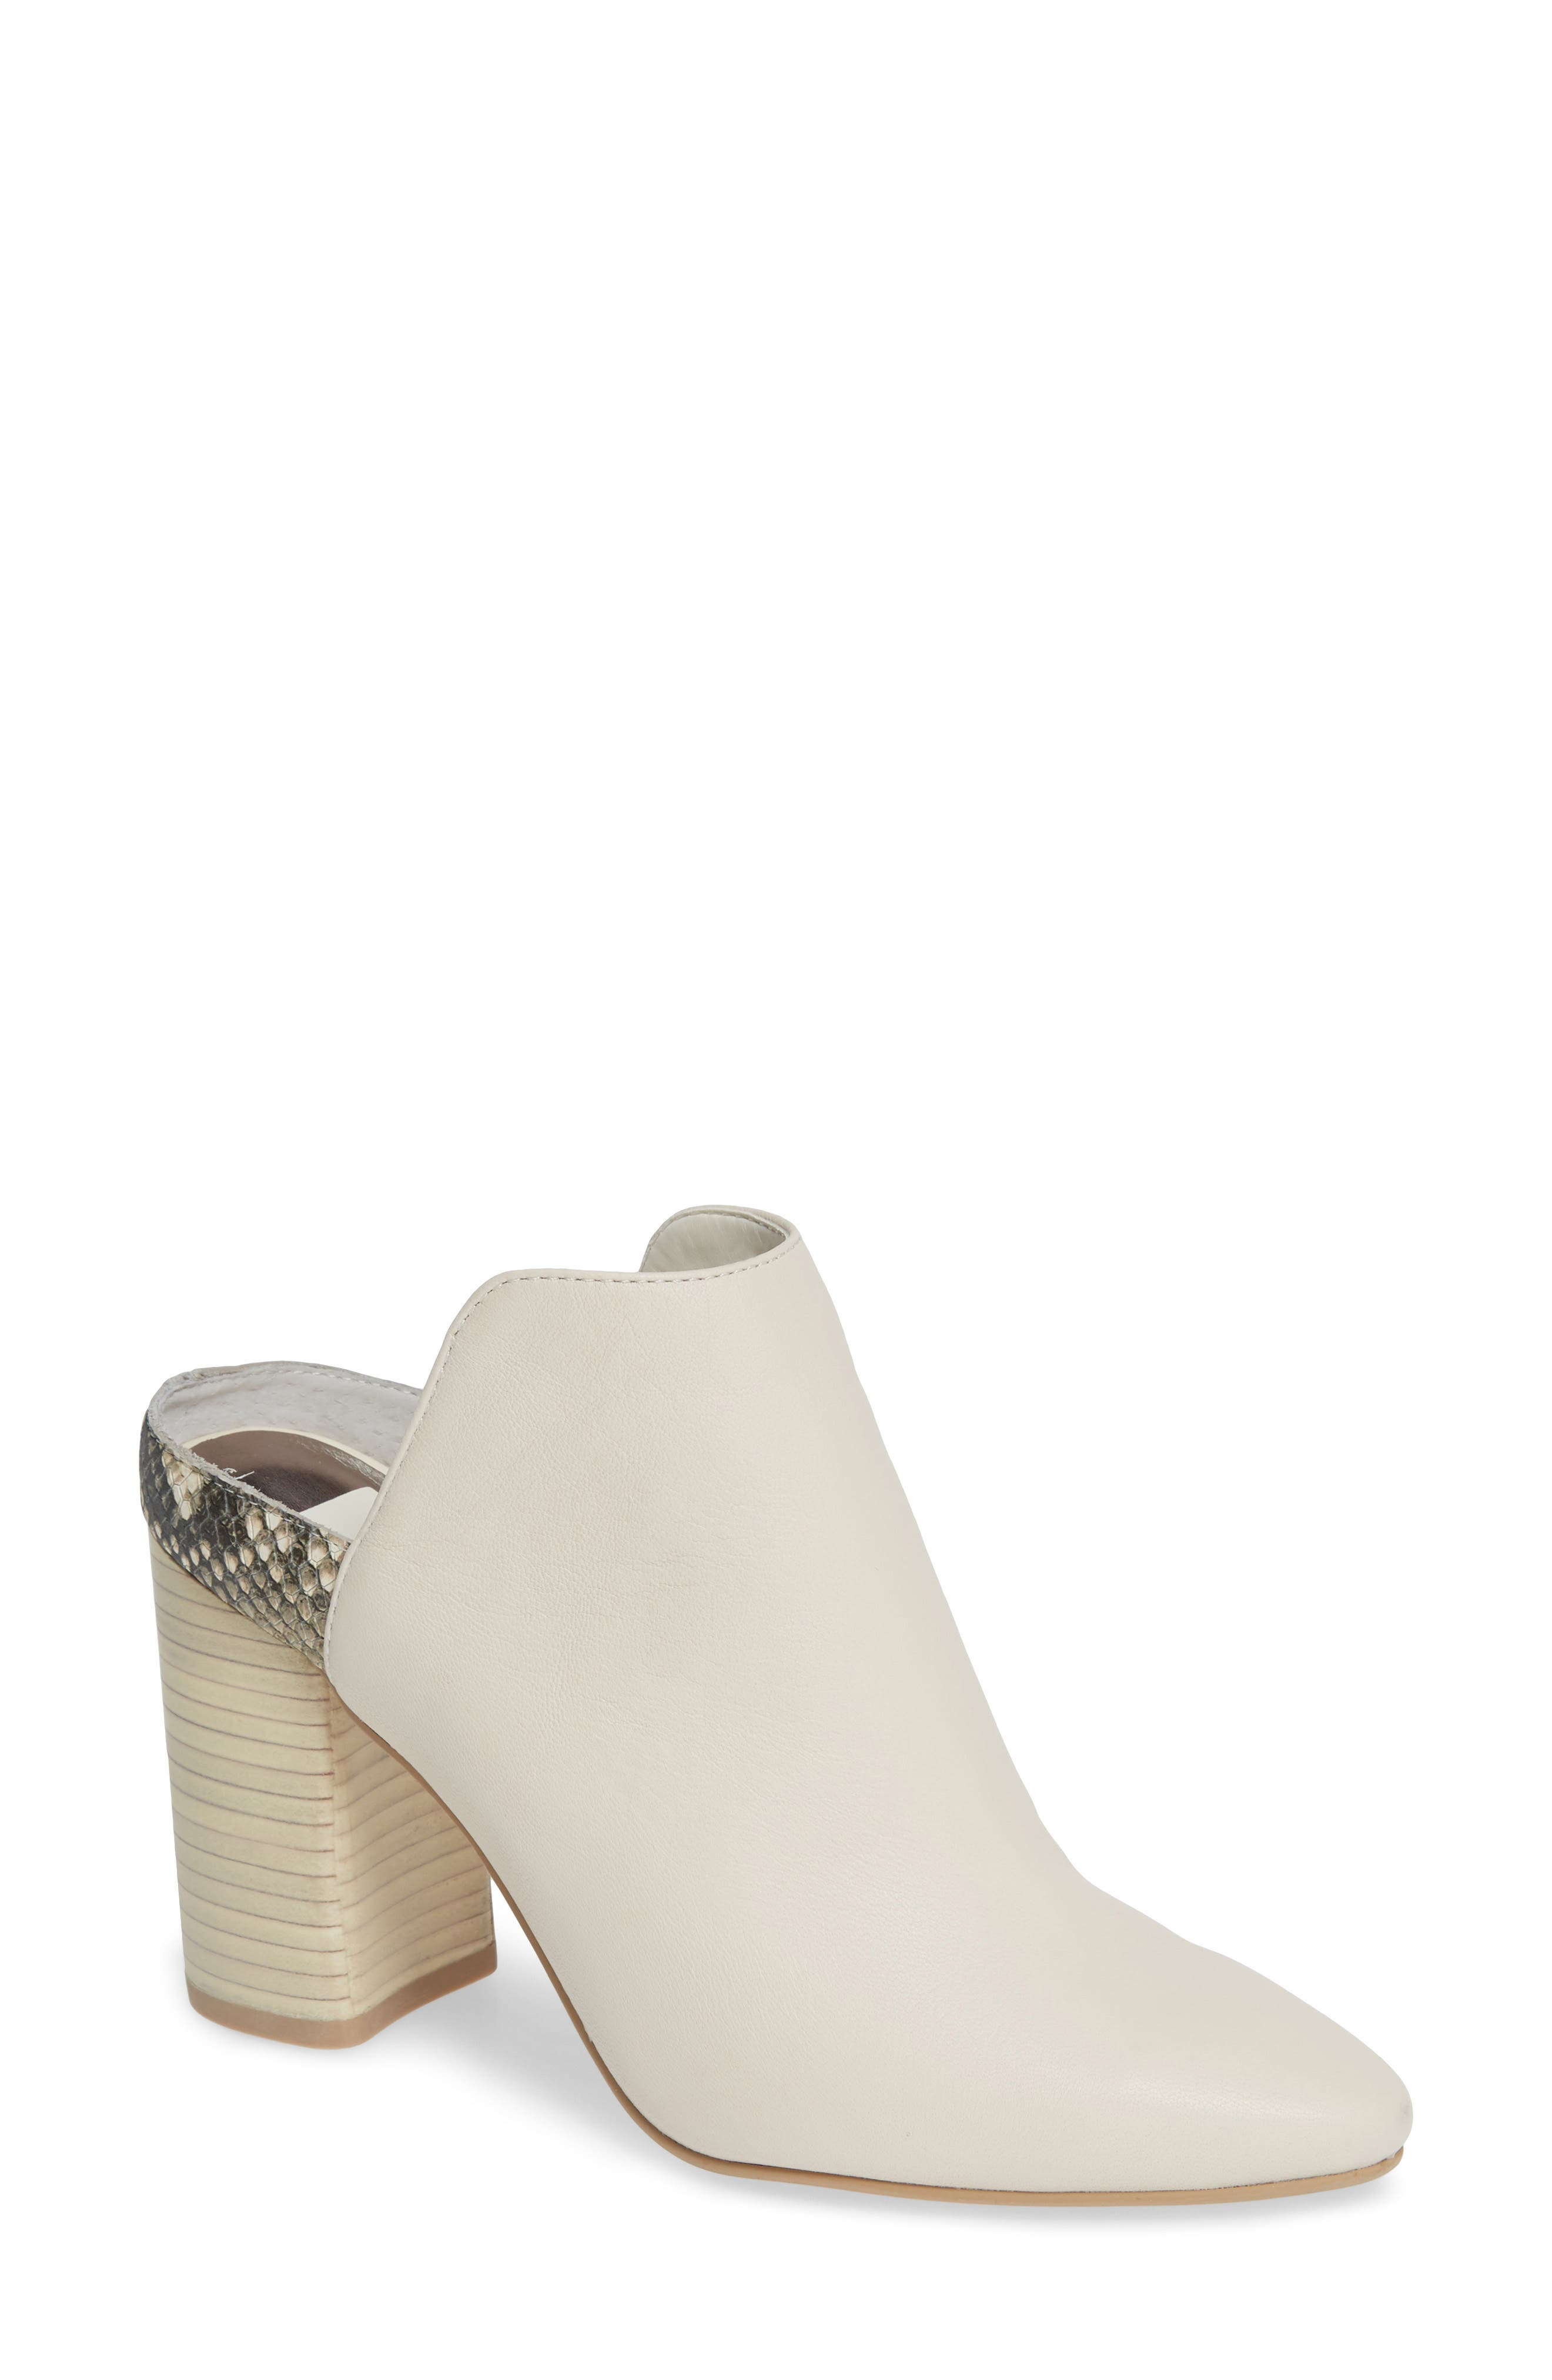 Renly Mule,                             Main thumbnail 1, color,                             IVORY